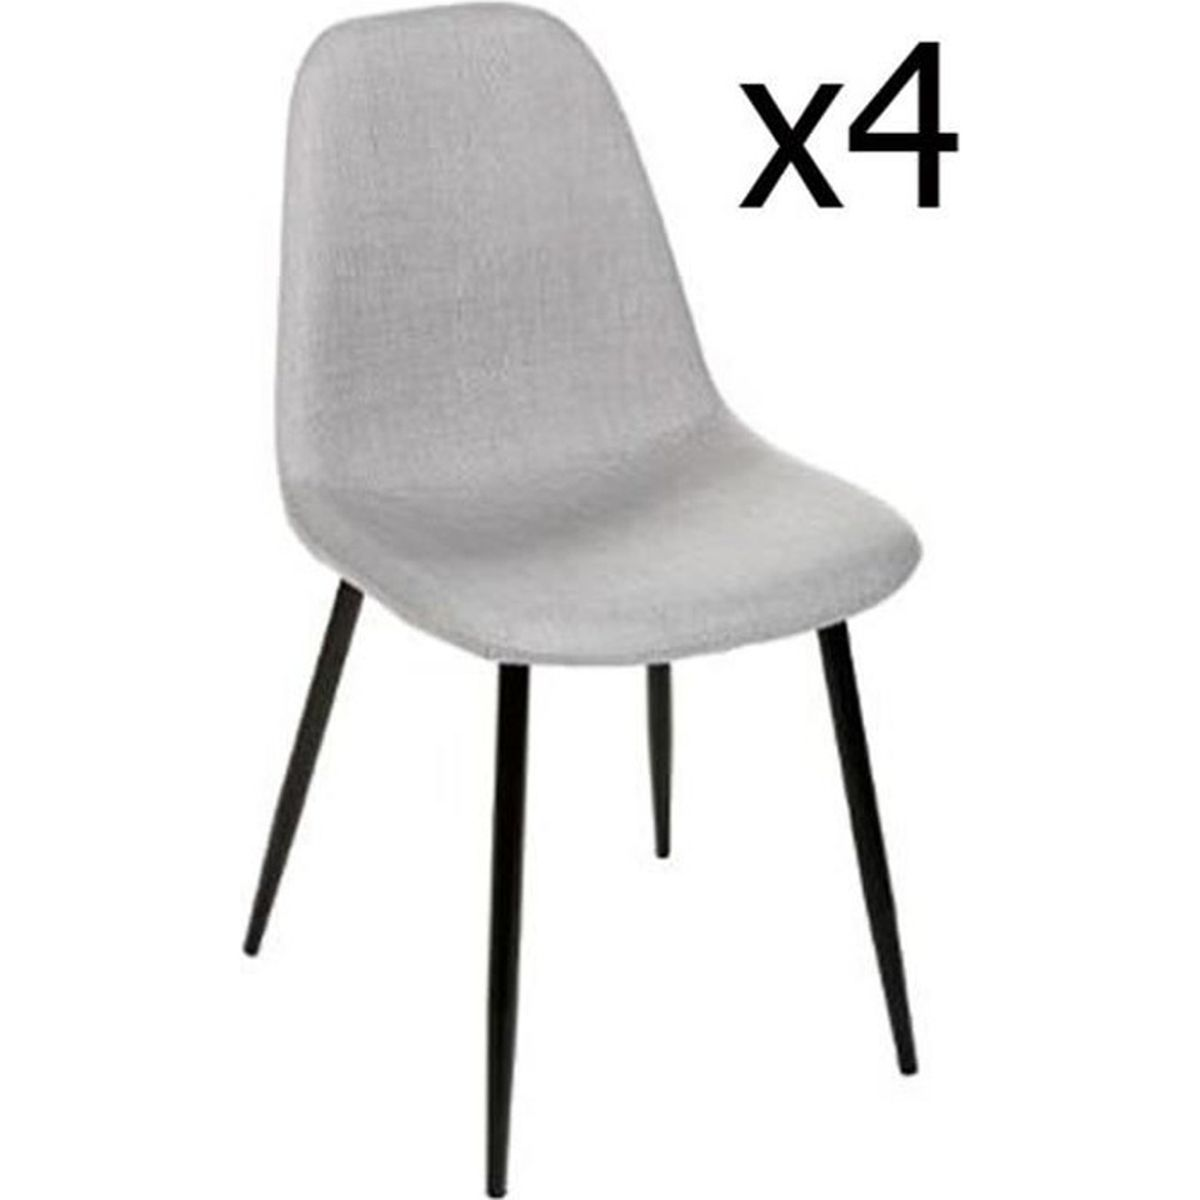 lot de 4 chaises en gris clair et pieds m tal noir l45 cm achat vente chaise gris cdiscount. Black Bedroom Furniture Sets. Home Design Ideas